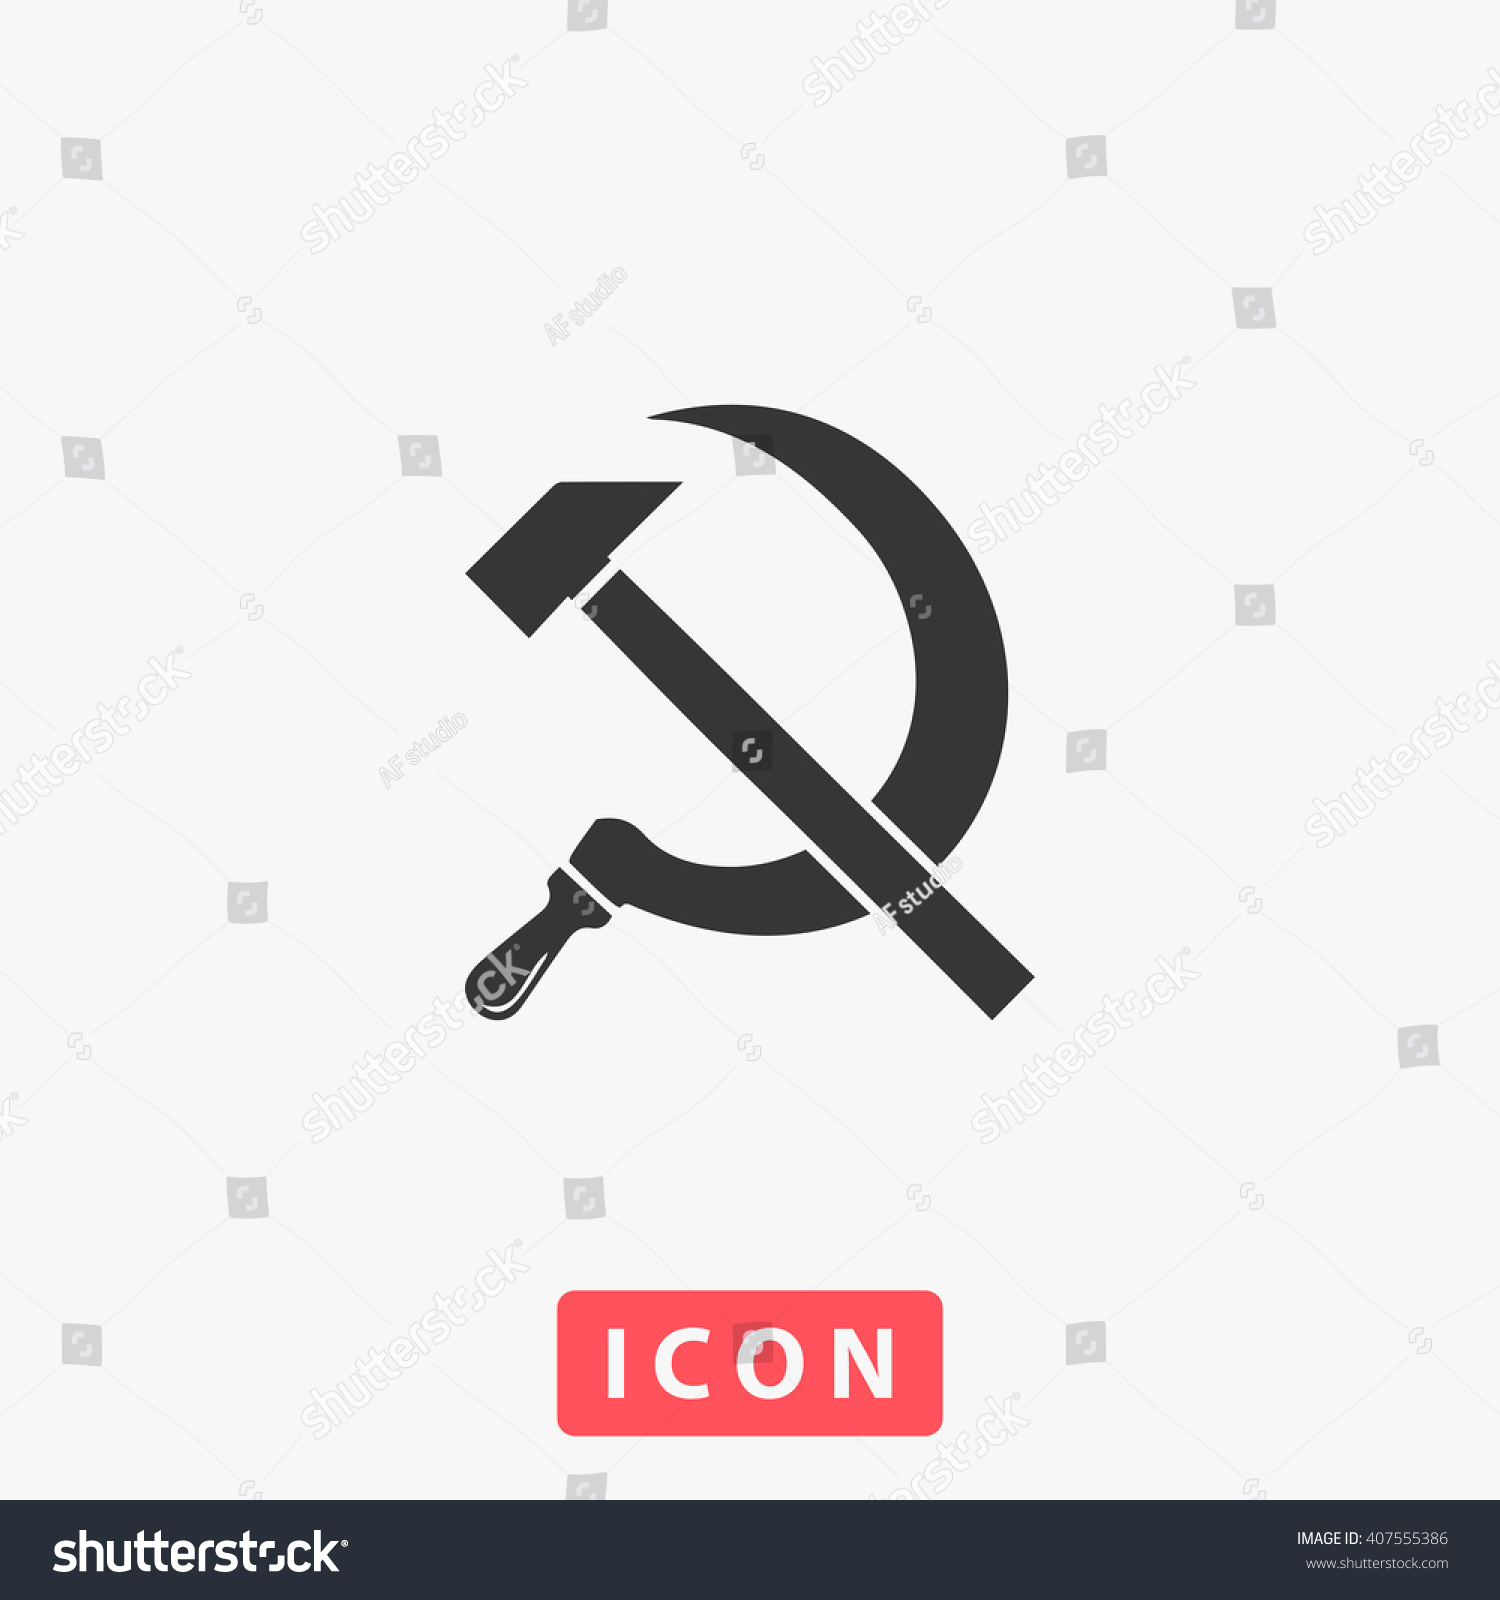 how to draw a hammer and sickle